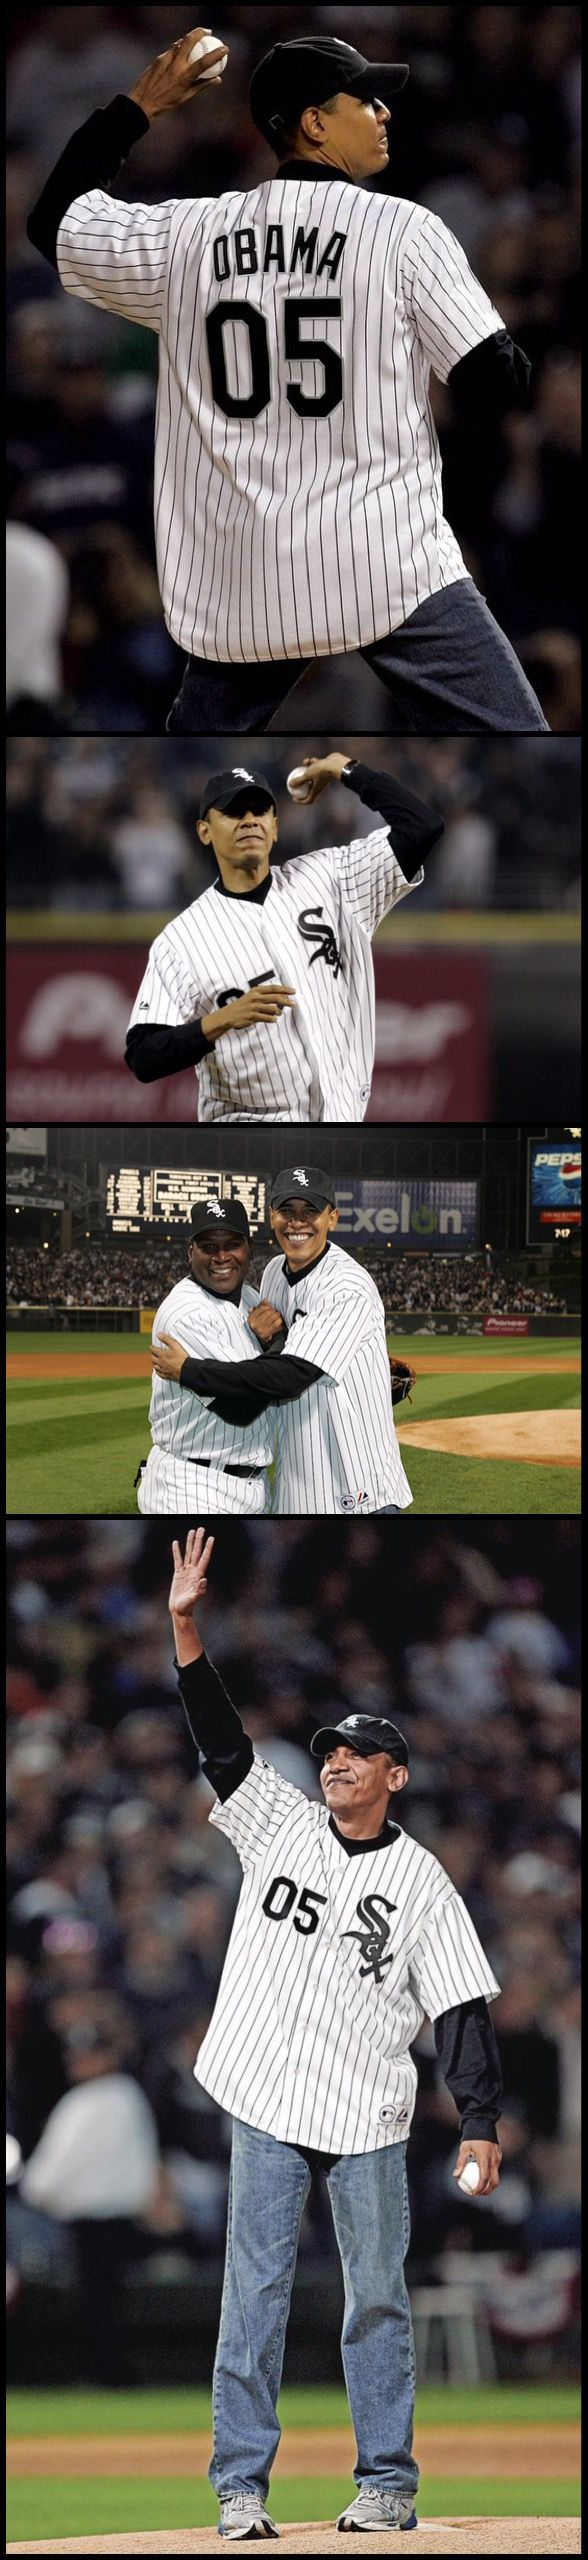 44thPresident Barack Obama may not have a future in the big leagues after he leaves the White House, but he held his own on the mound, throwing out his first ceremonial first pitch as President before Major League Baseball's All-Star Game. July 2009. Wearing a Chicago White Sox jacket in honor of his favorite team, he walked to the mound, and with no hesitation or pause, Obama threw a solid pitch